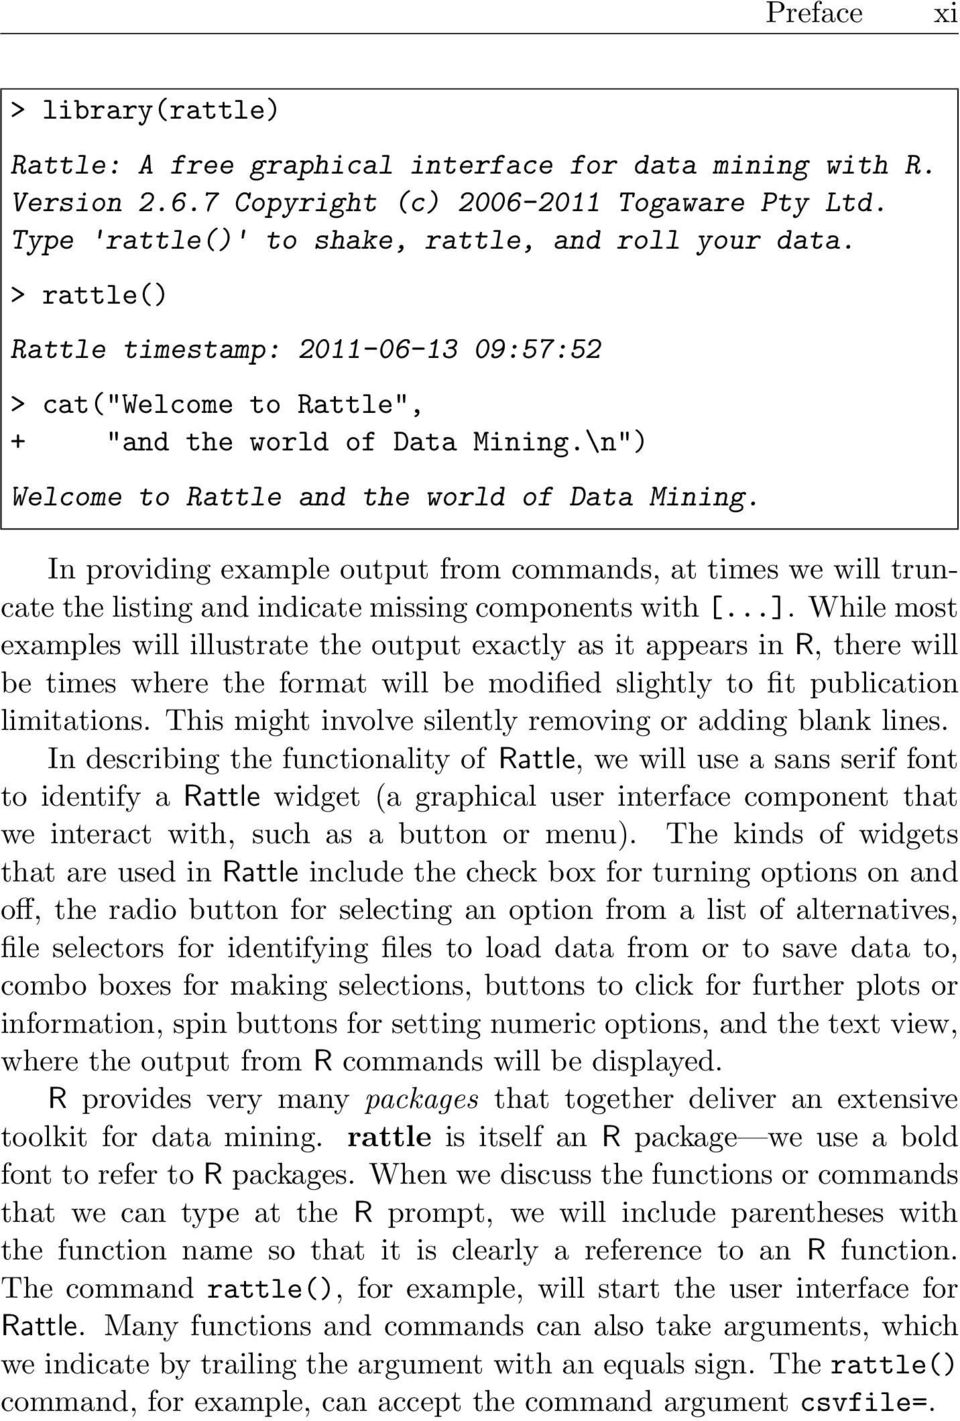 In providing exampe output from commands, at times we wi truncate the isting and indicate missing components with [...].